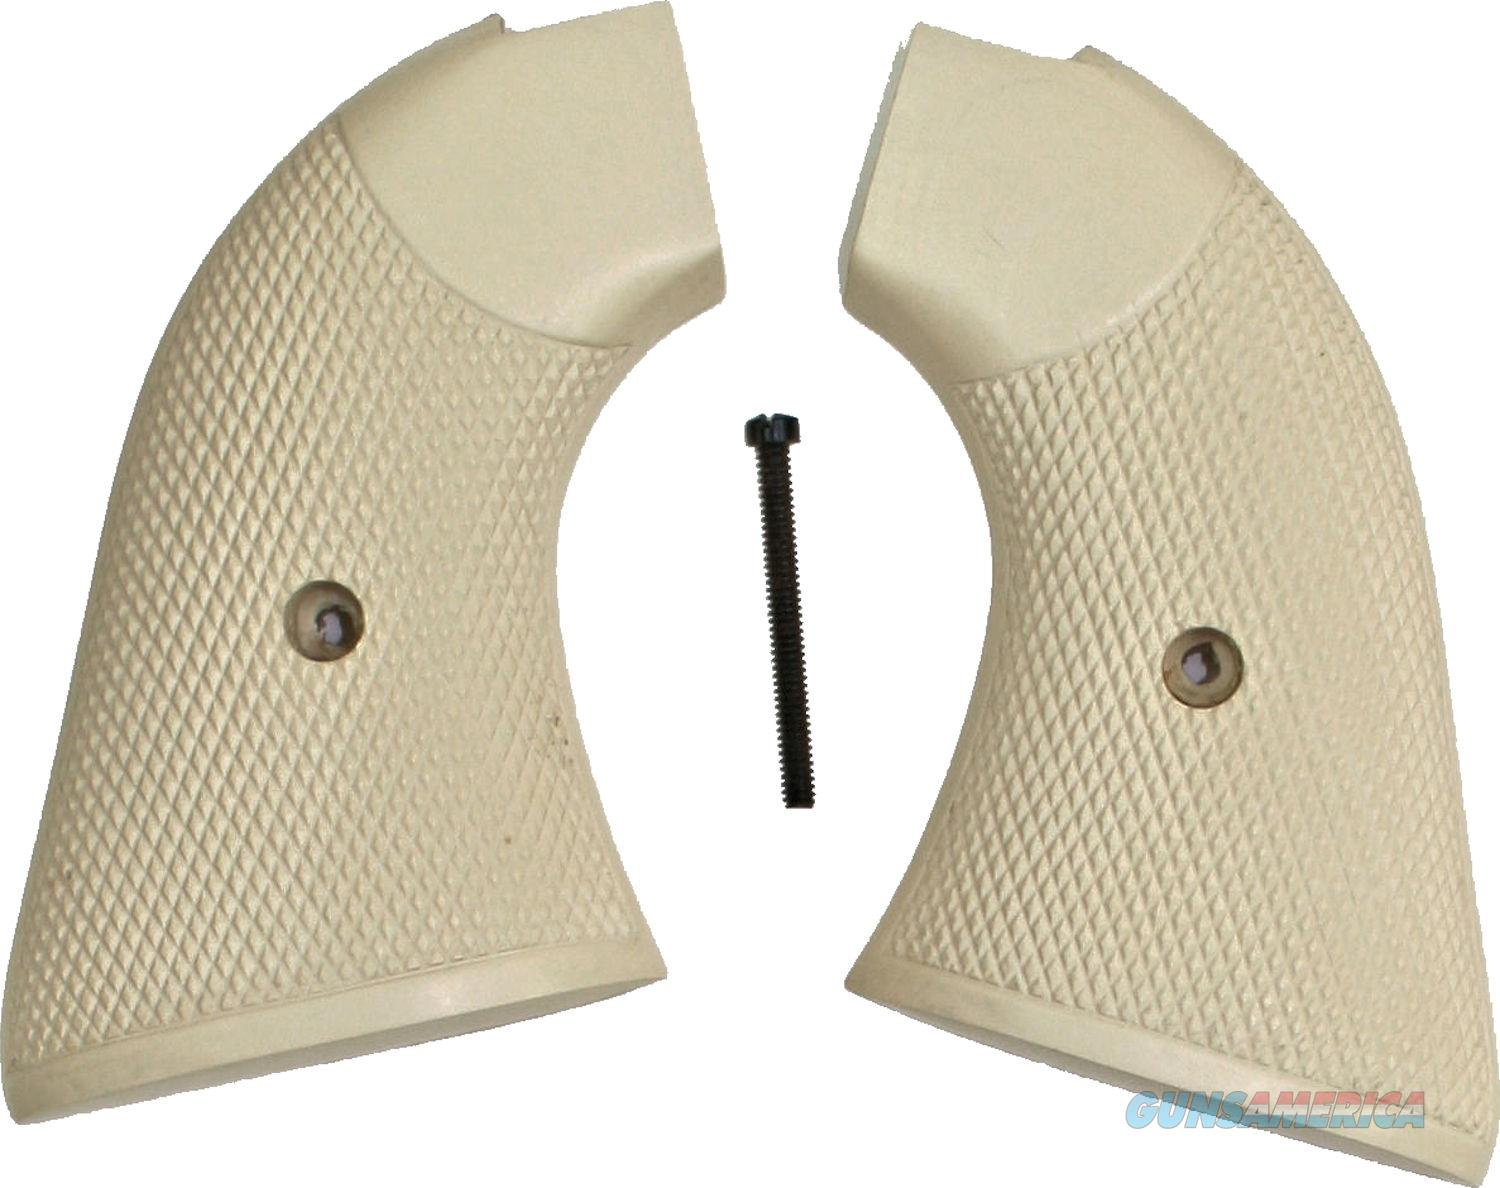 Colt Scout & Frontier Real Ivory Grips, Checkered  Non-Guns > Gun Parts > Grips > Cowboy